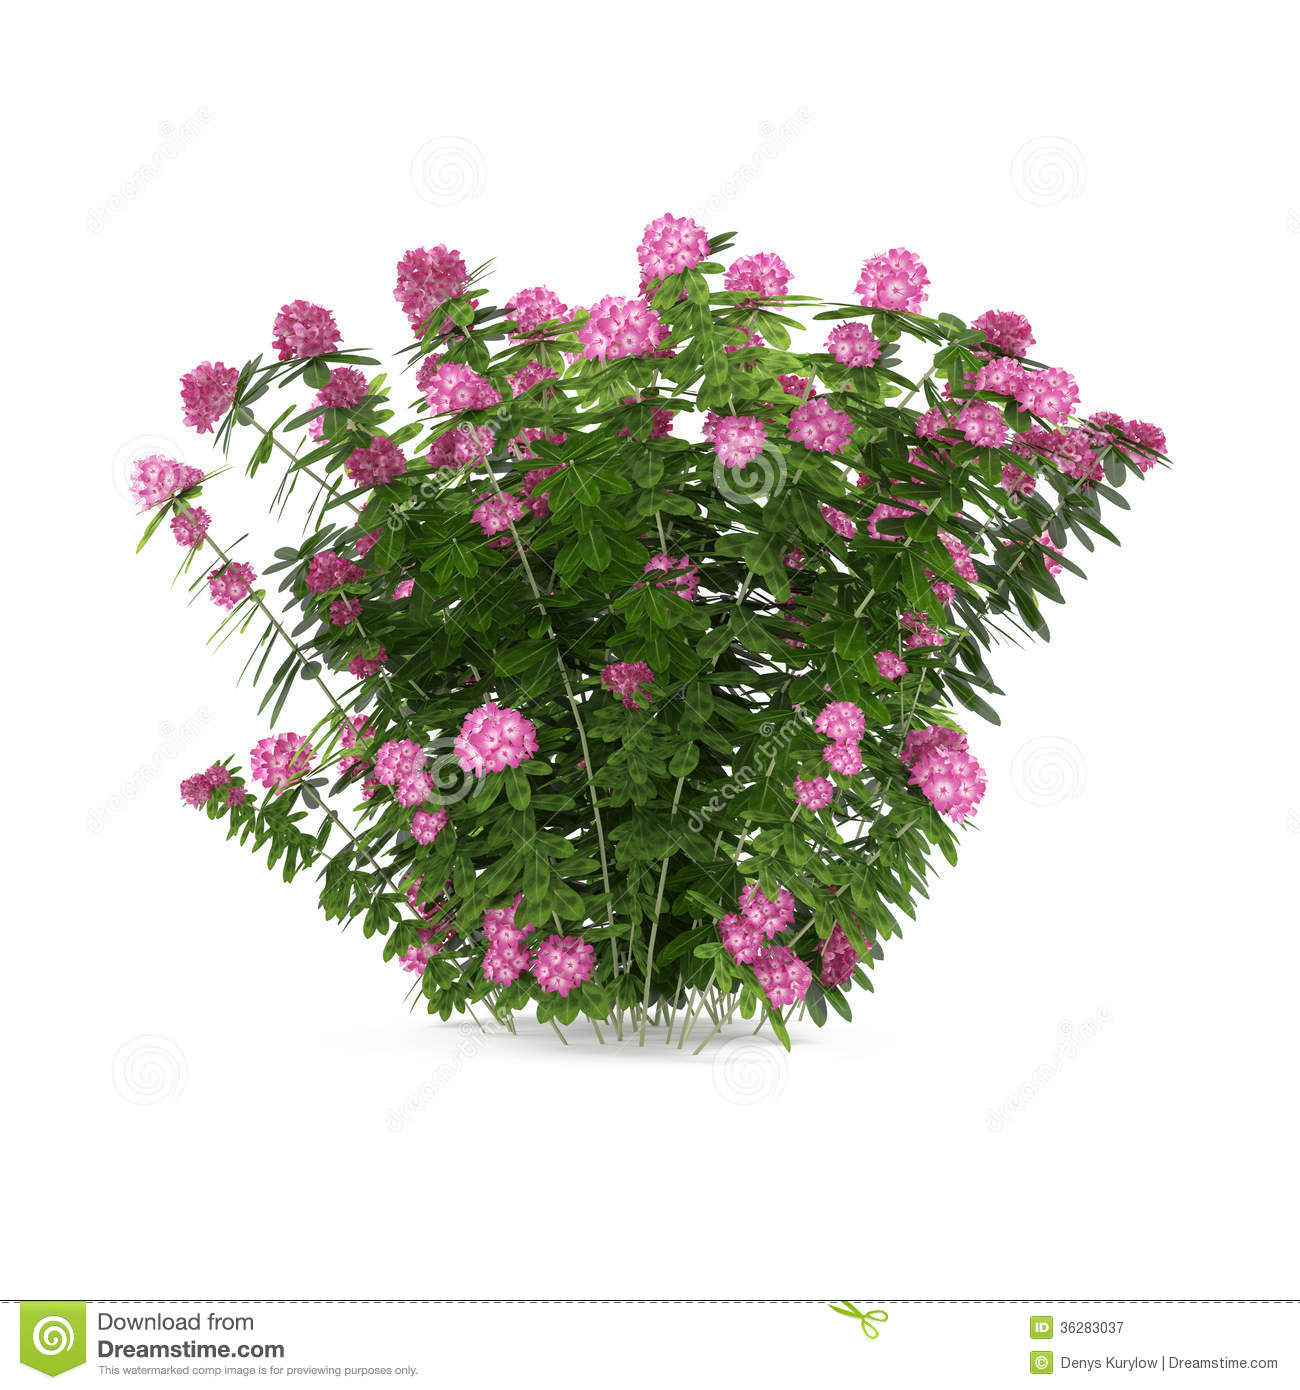 Plant bush with pink flowers isolated stock illustration plant bush with pink flowers isolated mightylinksfo